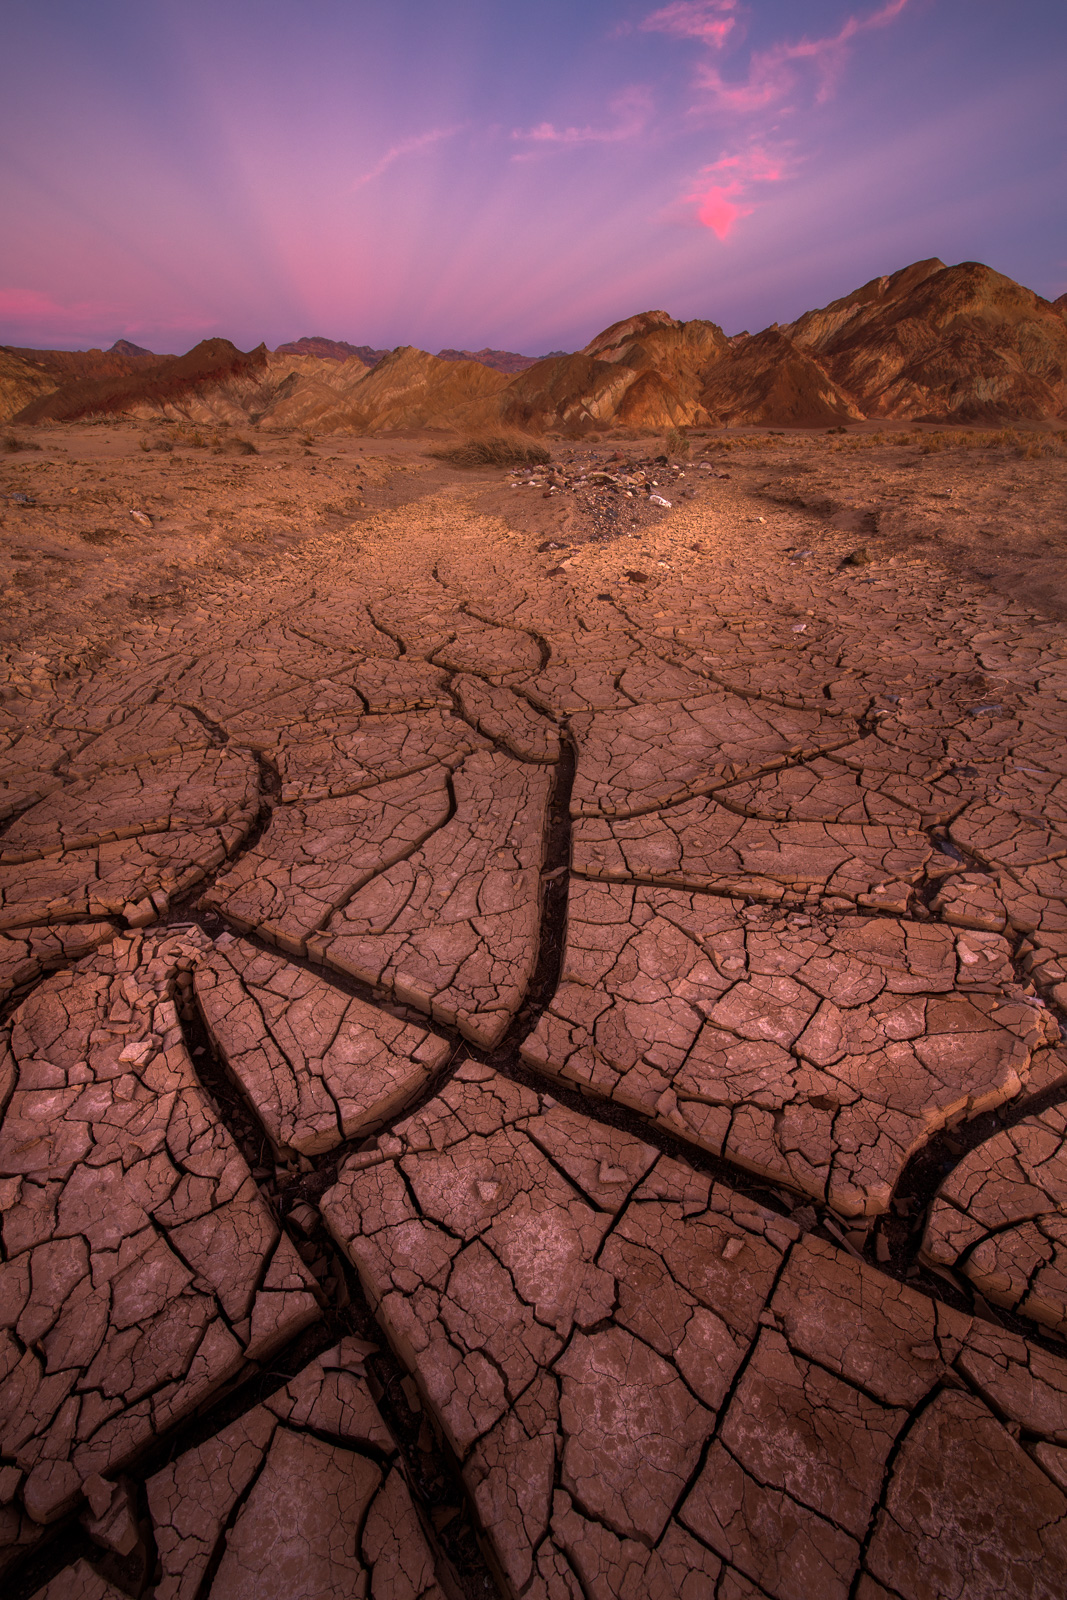 Cracked mud at susnet from mud flats near Furnace Creek.